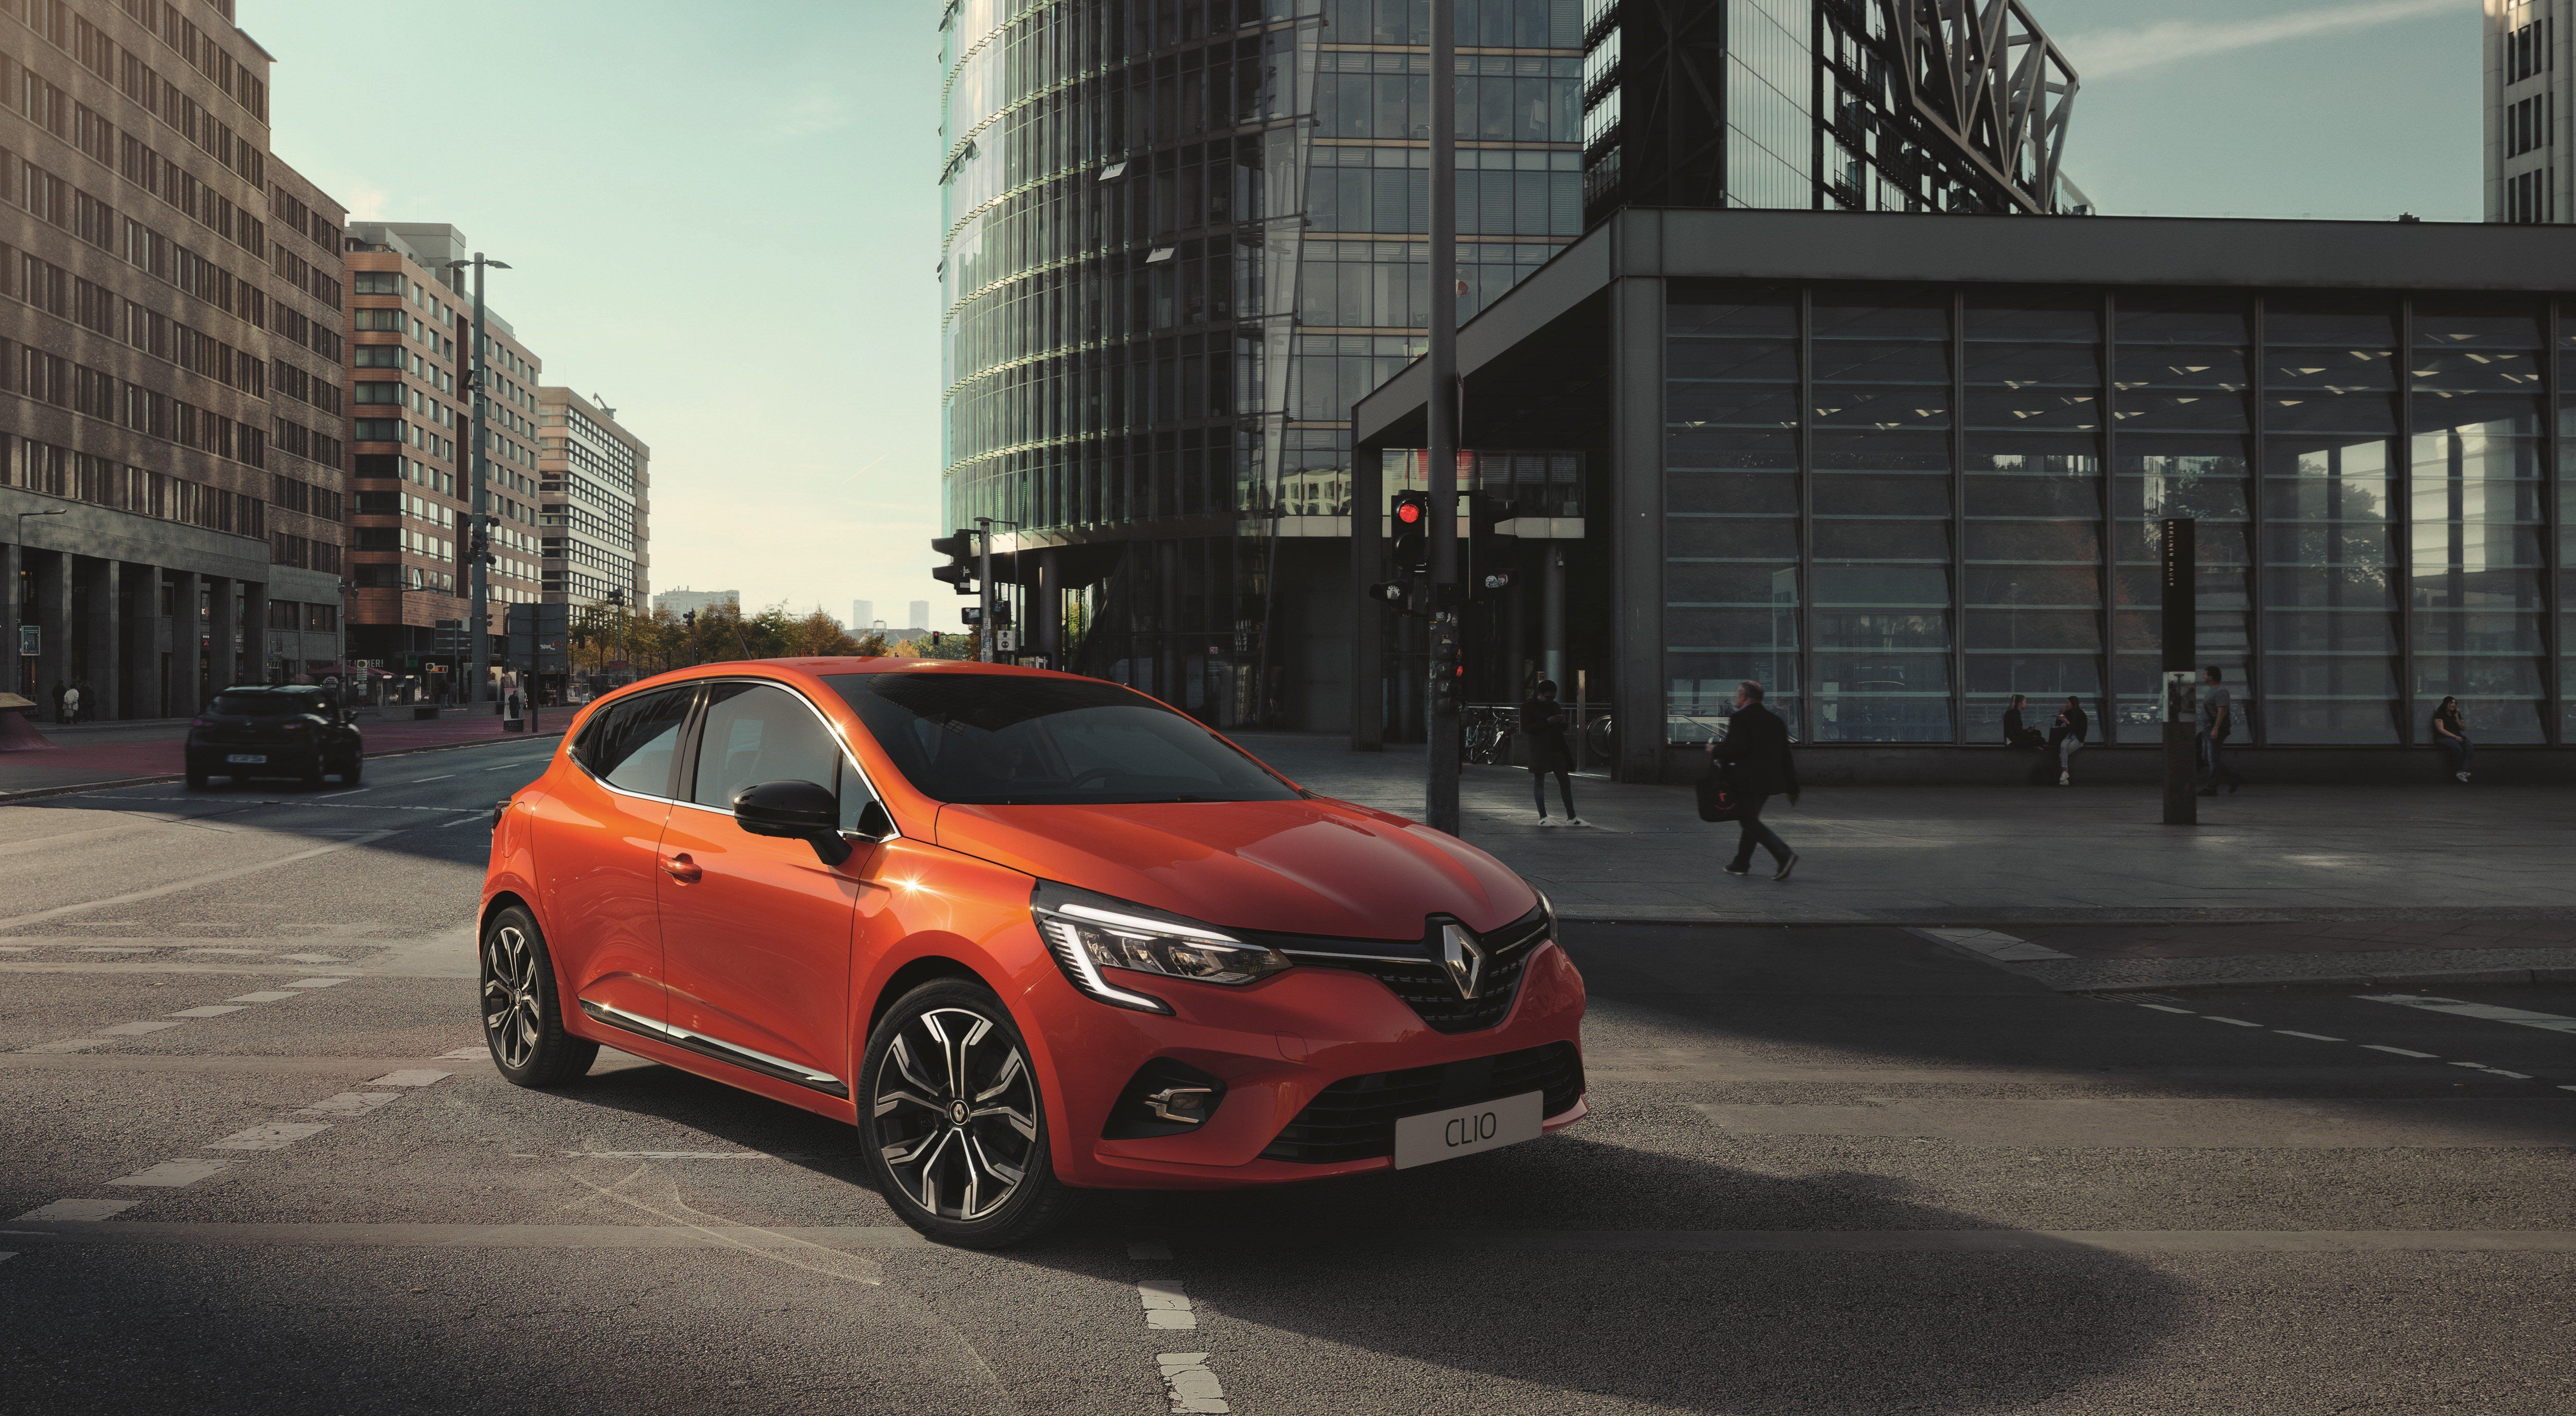 Wallpaper Of The Day 2019 Renault Clio New Renault Clio New